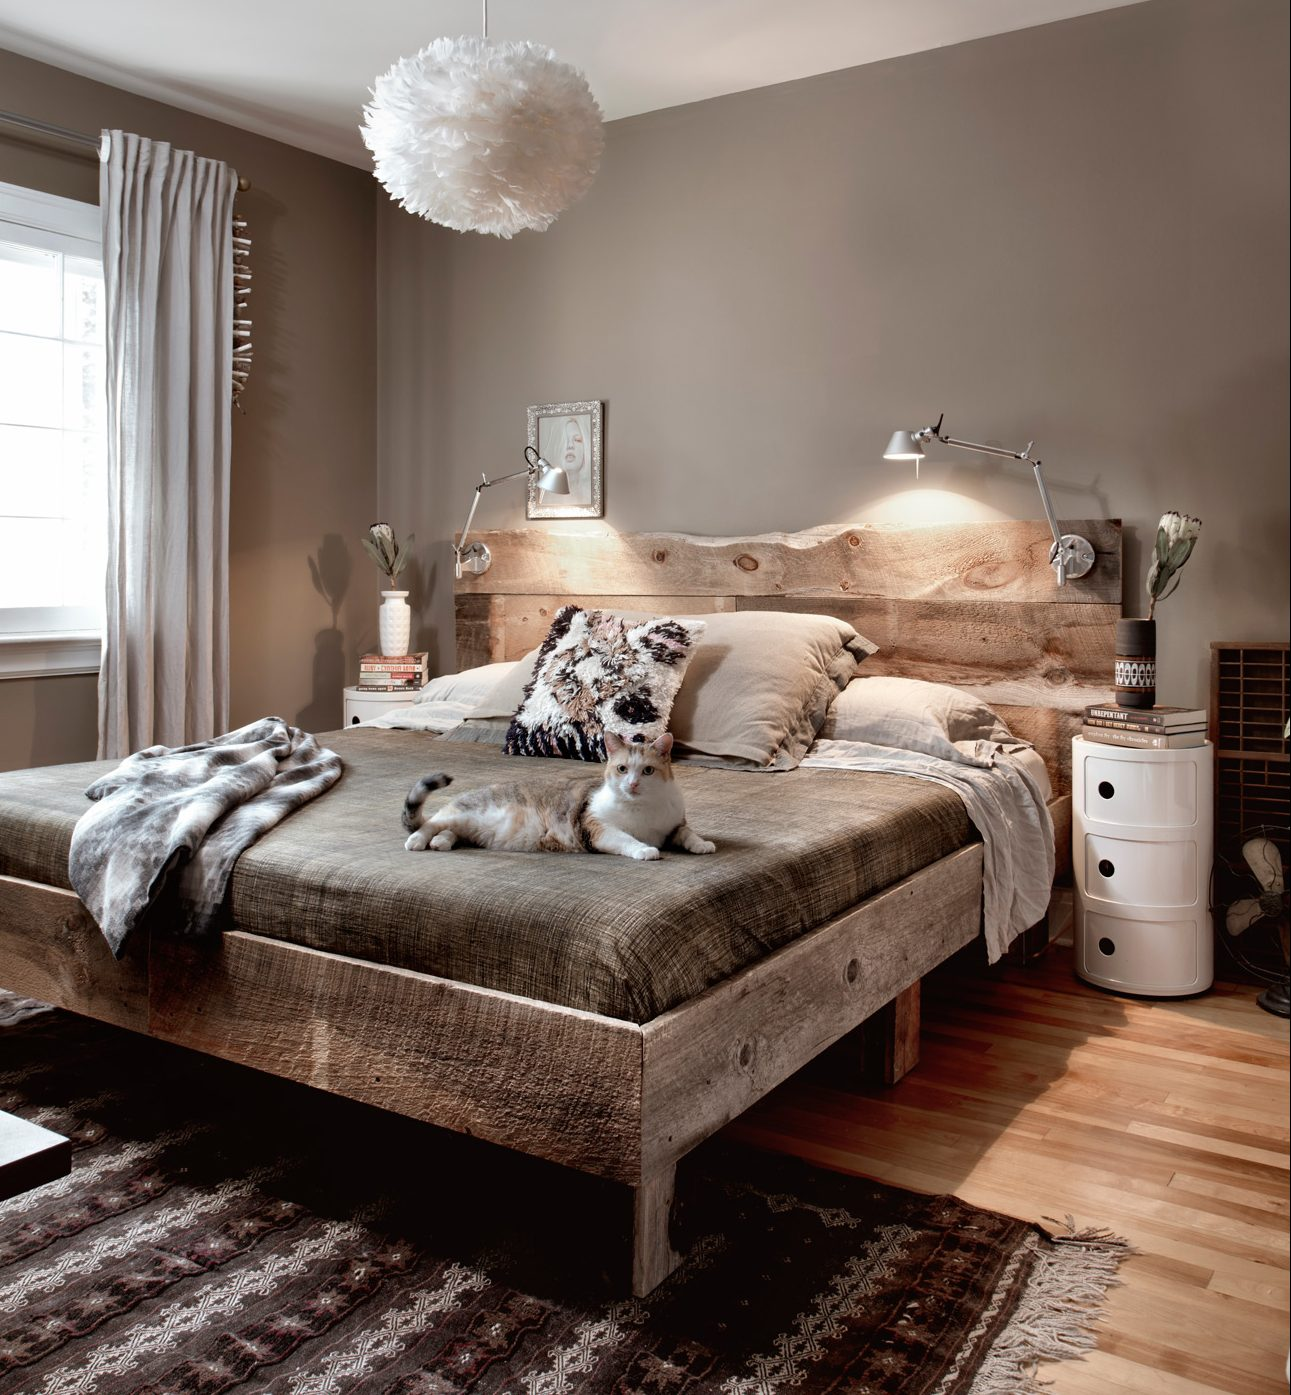 Jeff built the bed frame in the master bedroom from old barnwood, making for a rustic feel. With white trim and rich, dark walls, the room is enveloping and warm. Photography: Marc Fowler / Metropolis Studio